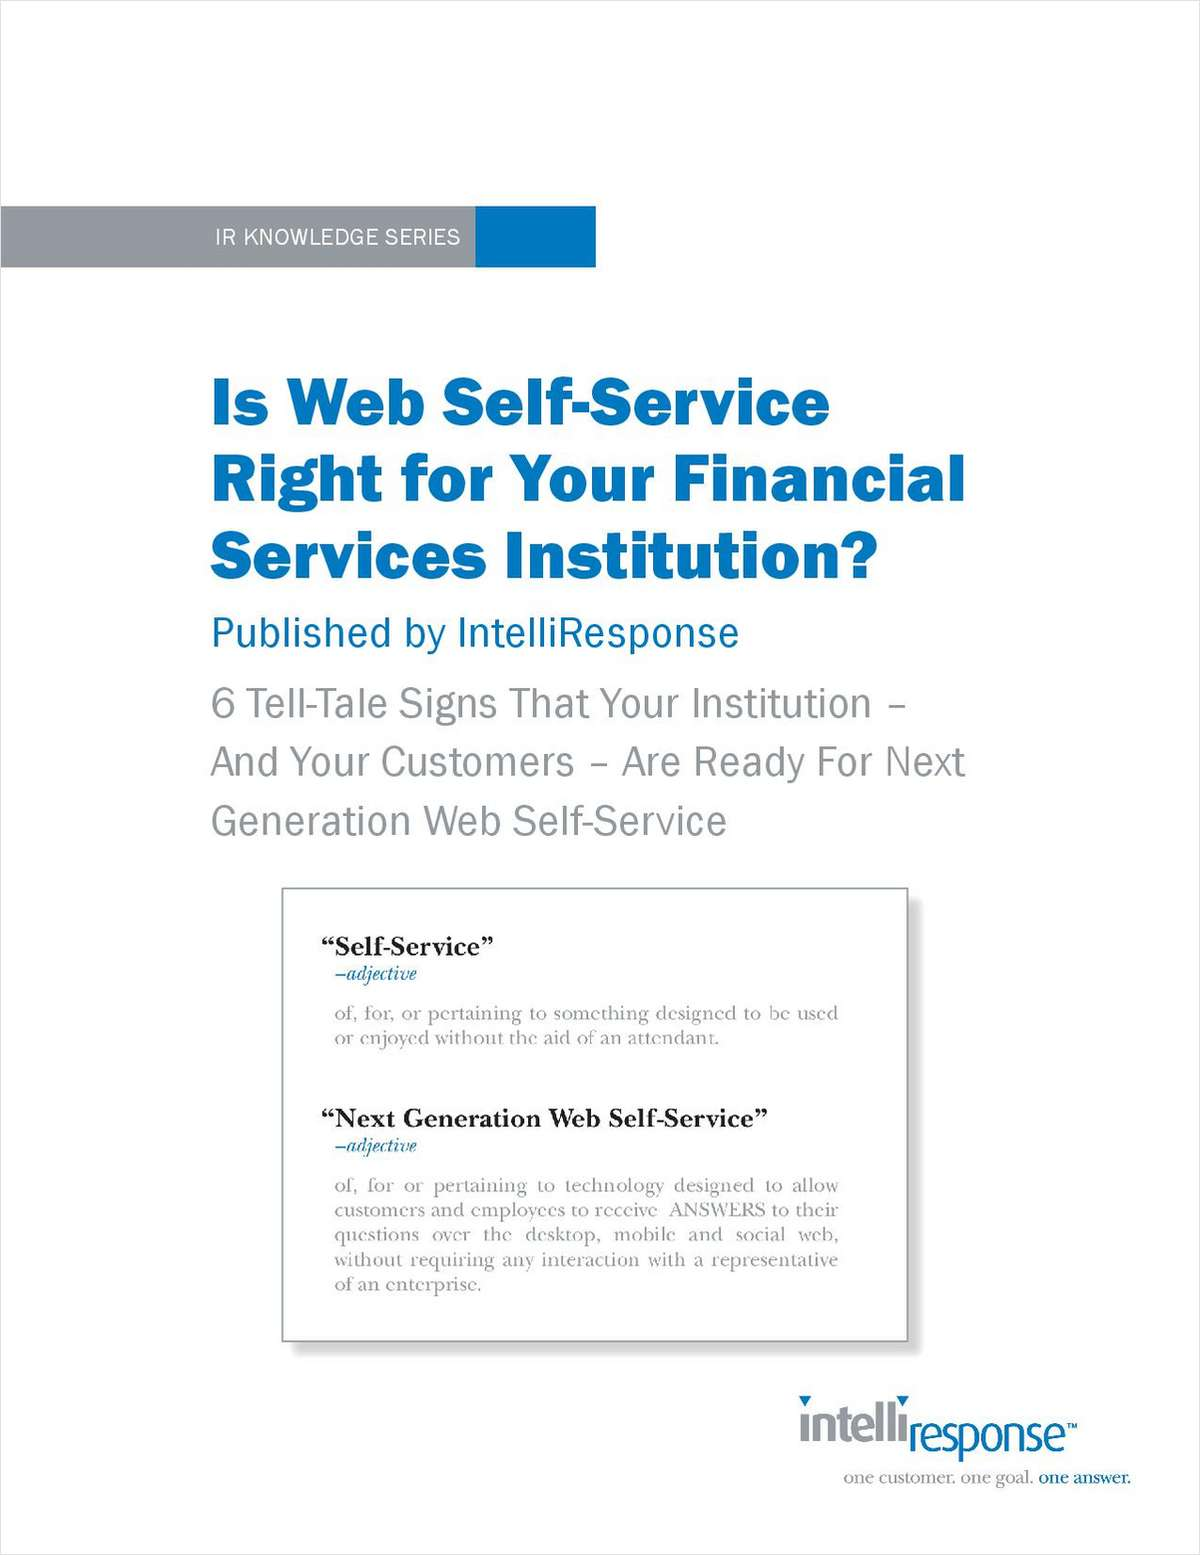 Is Web Self-Service Right for Your Financial Services Institution?